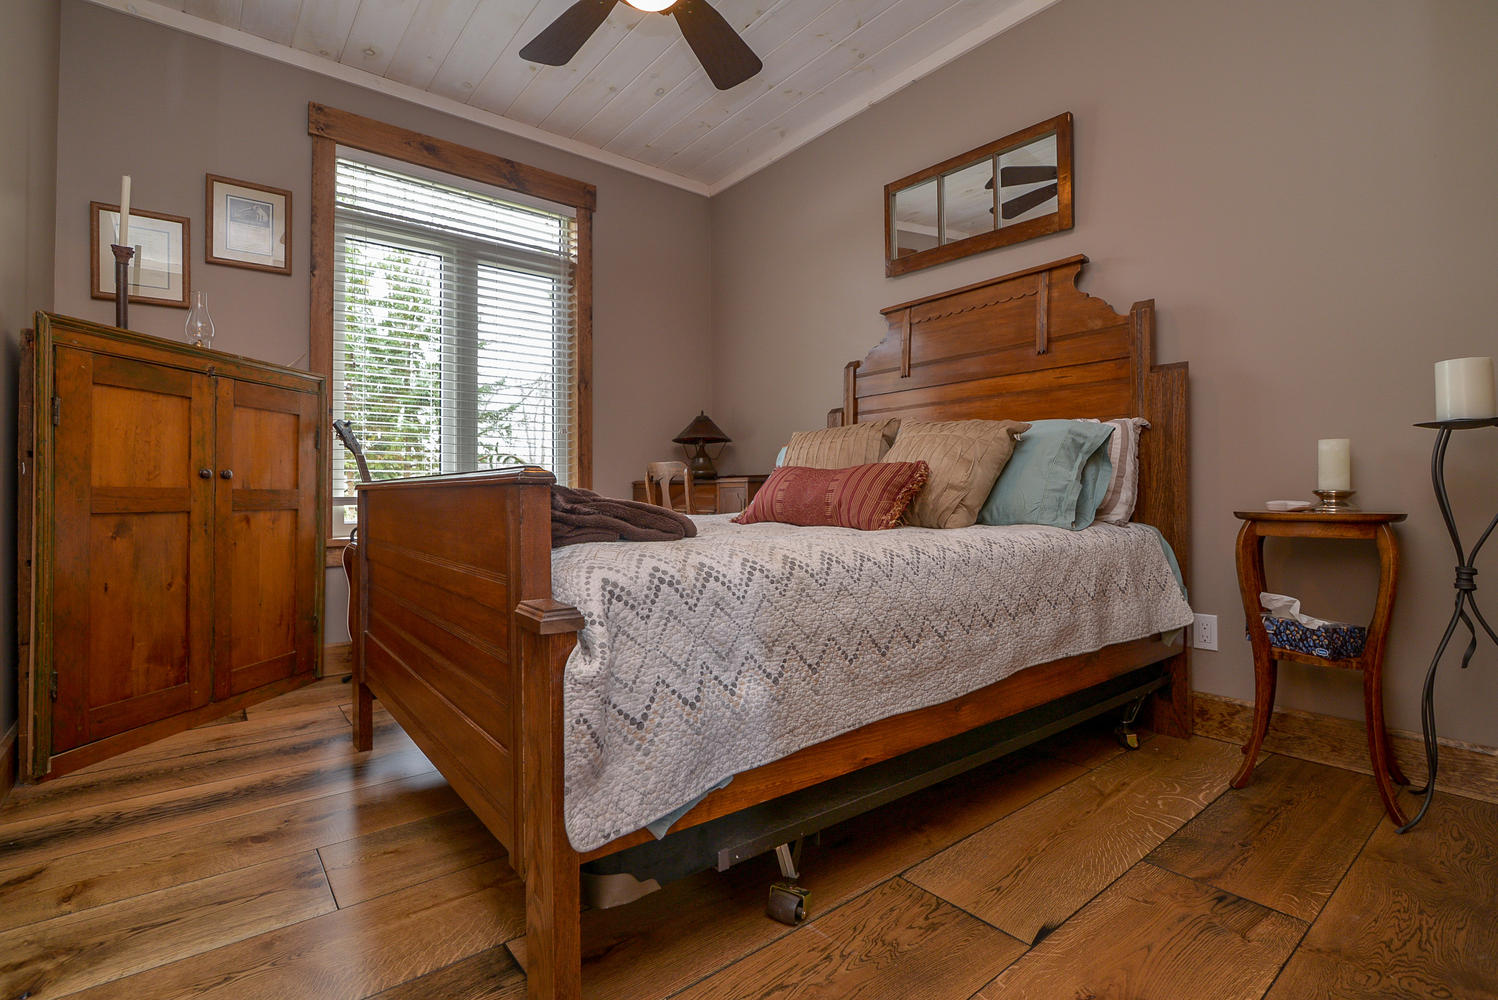 Pictures of Wide plank white oak flooring in large planks